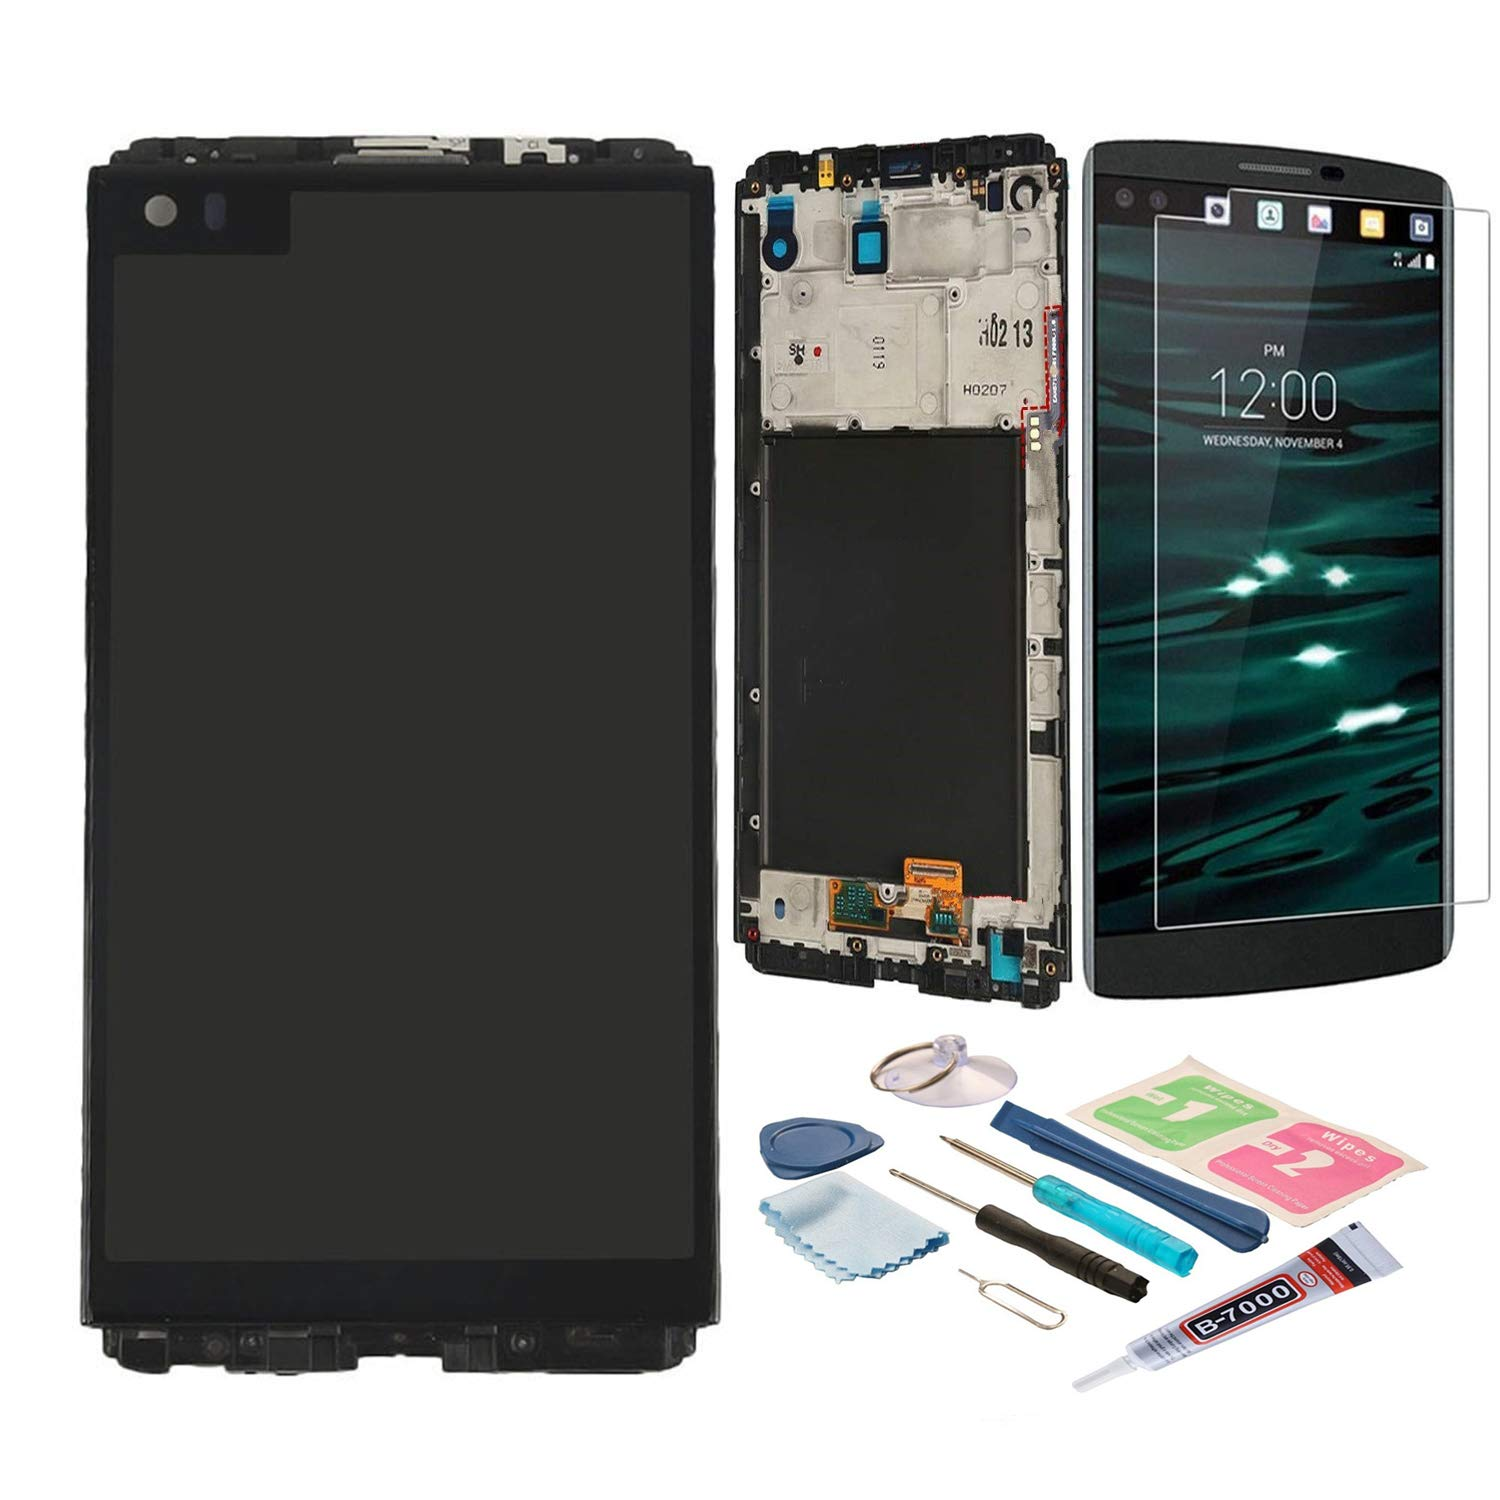 XR MARKET Compatible LG V20 Screen Replacement, LCD Display Touch Screen Glass Digitizer Assembly, for LG LS997 US996 VS995 H918 H990 H910 H915 H990DS H990TR F800L(Black W/Frame)